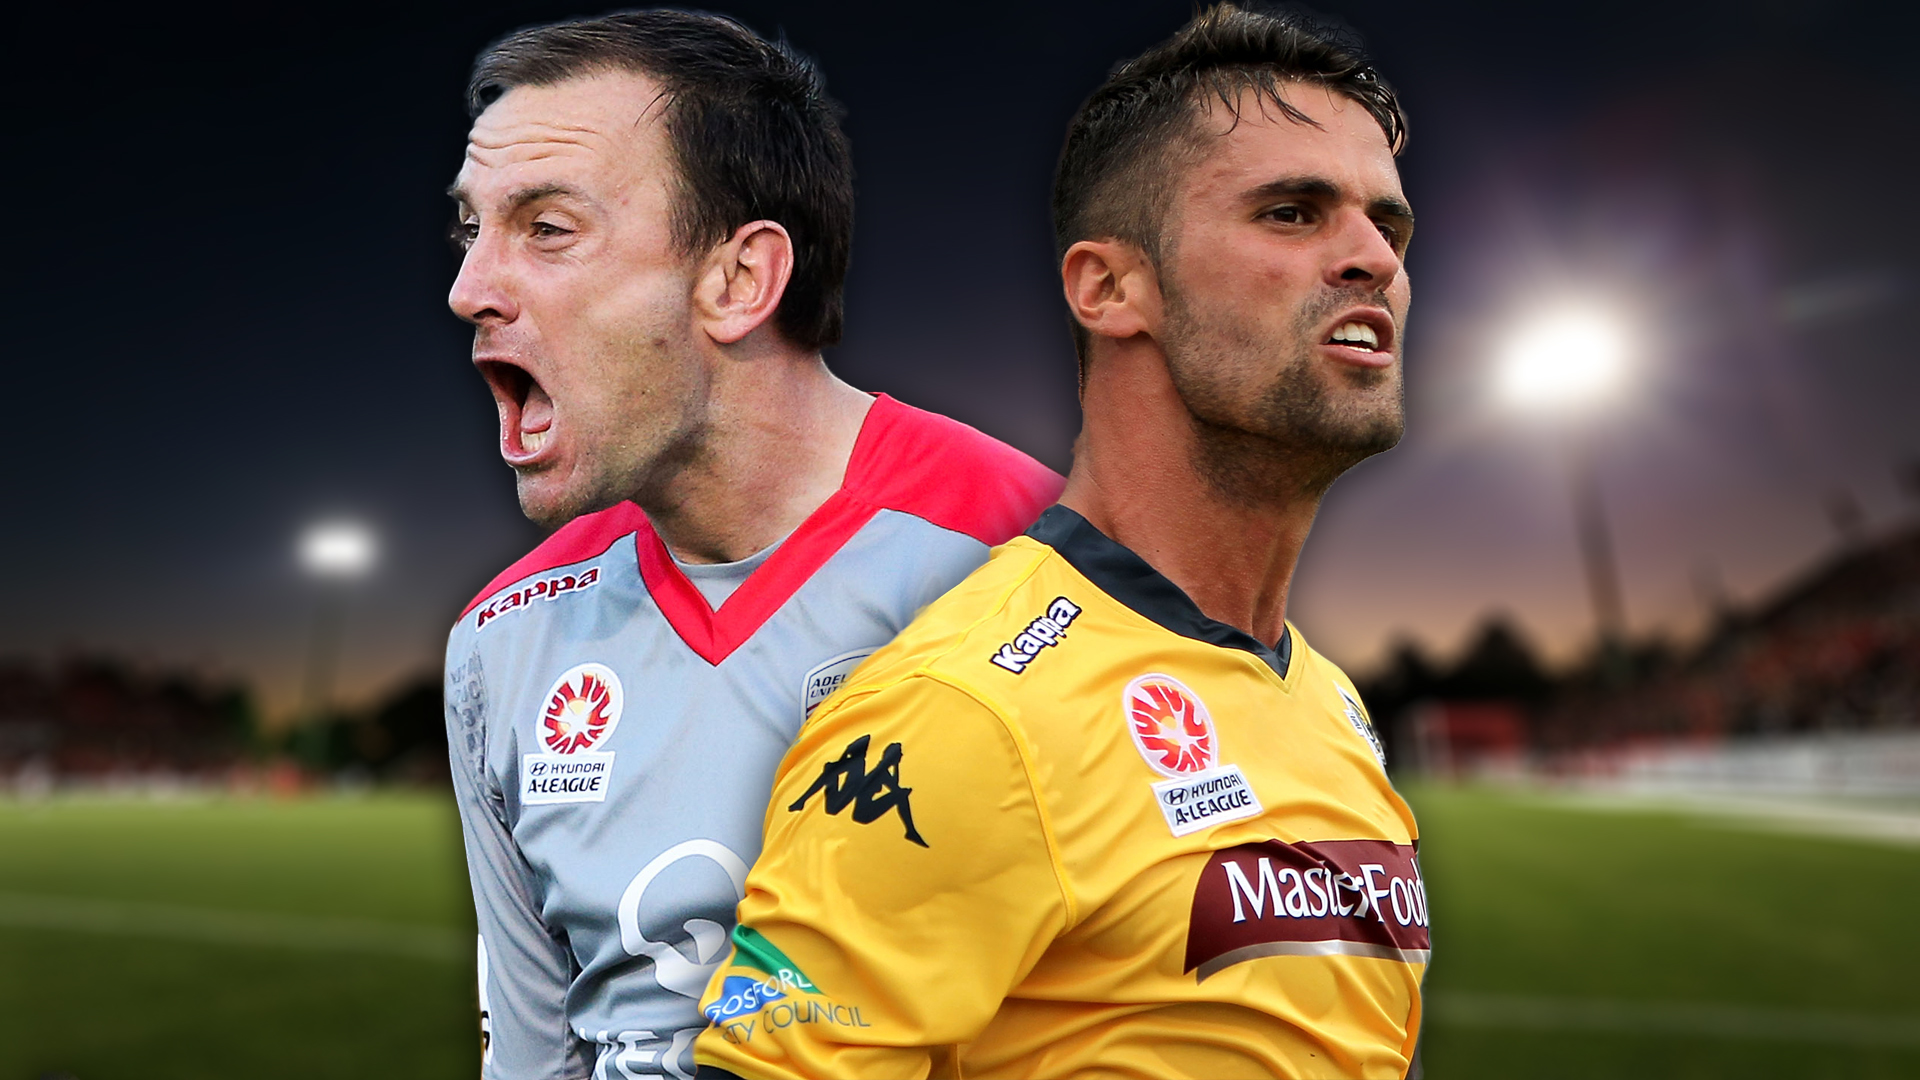 ADELAIDE UNITED V CENTRAL COAST MARINERS: PRATINJAU PERTANDINGAN